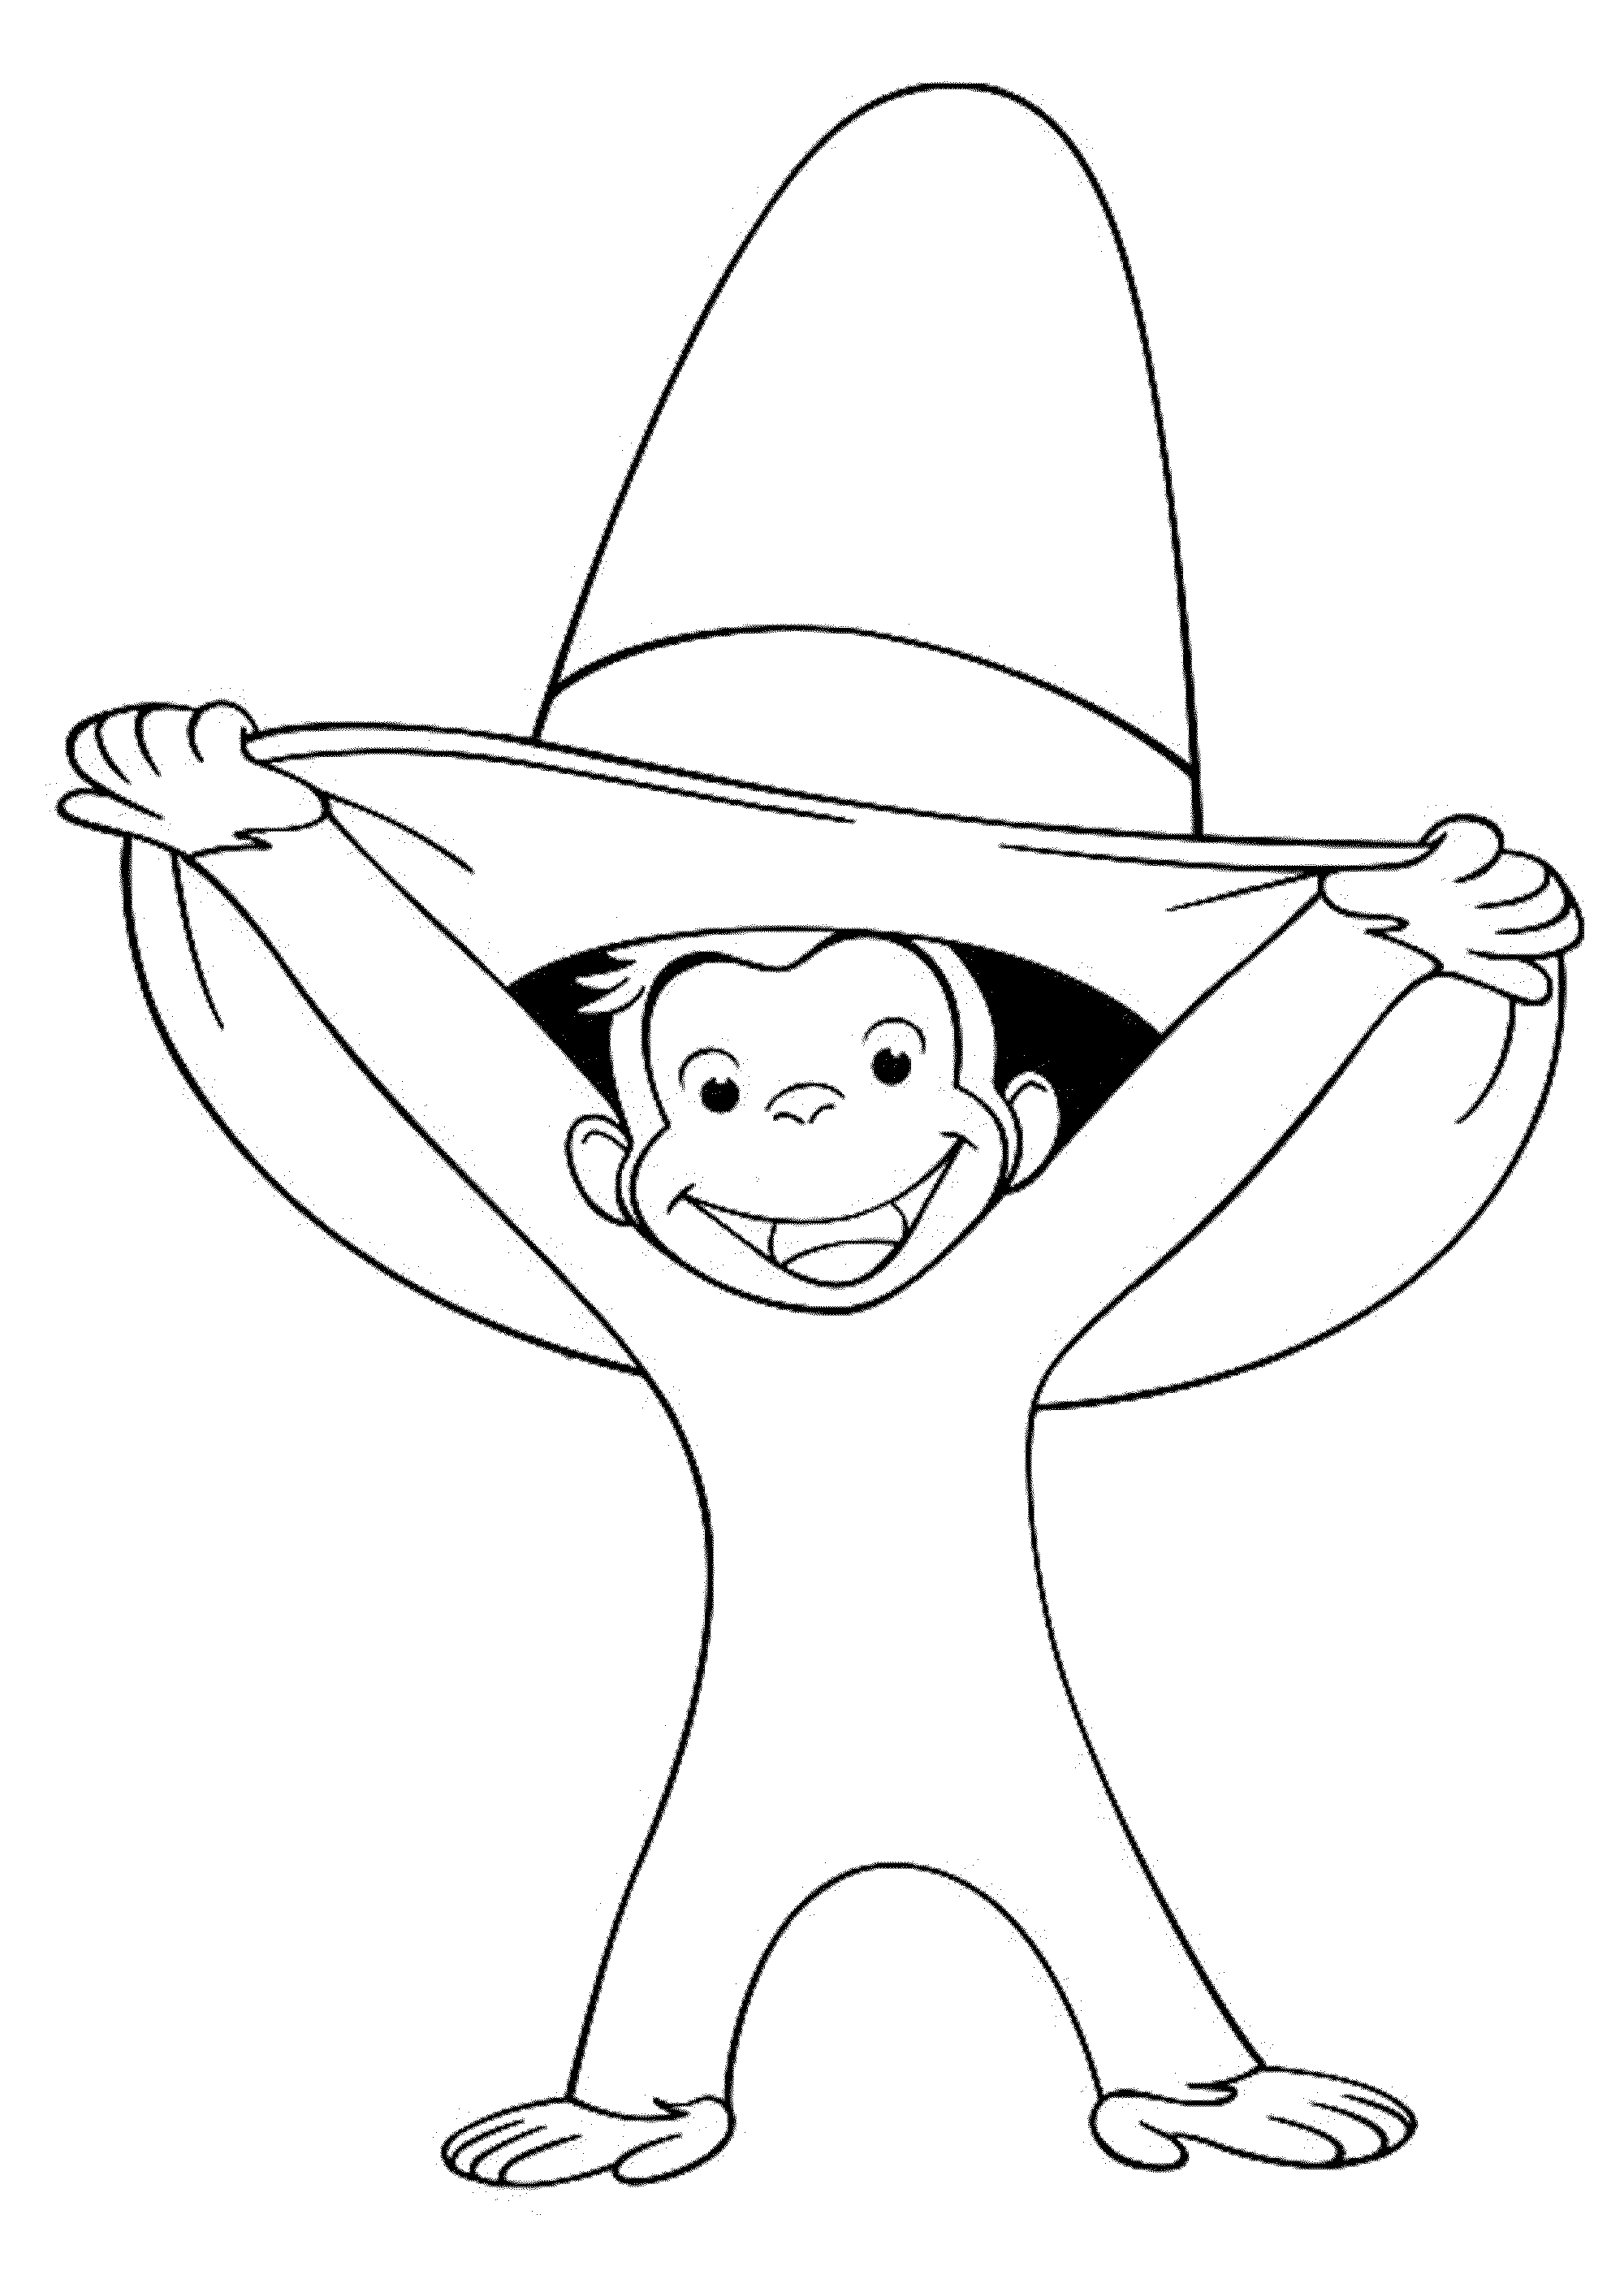 Curious George Coloring Pages To Stimulate Kids Fine Motor Skills Best Apps For Kids